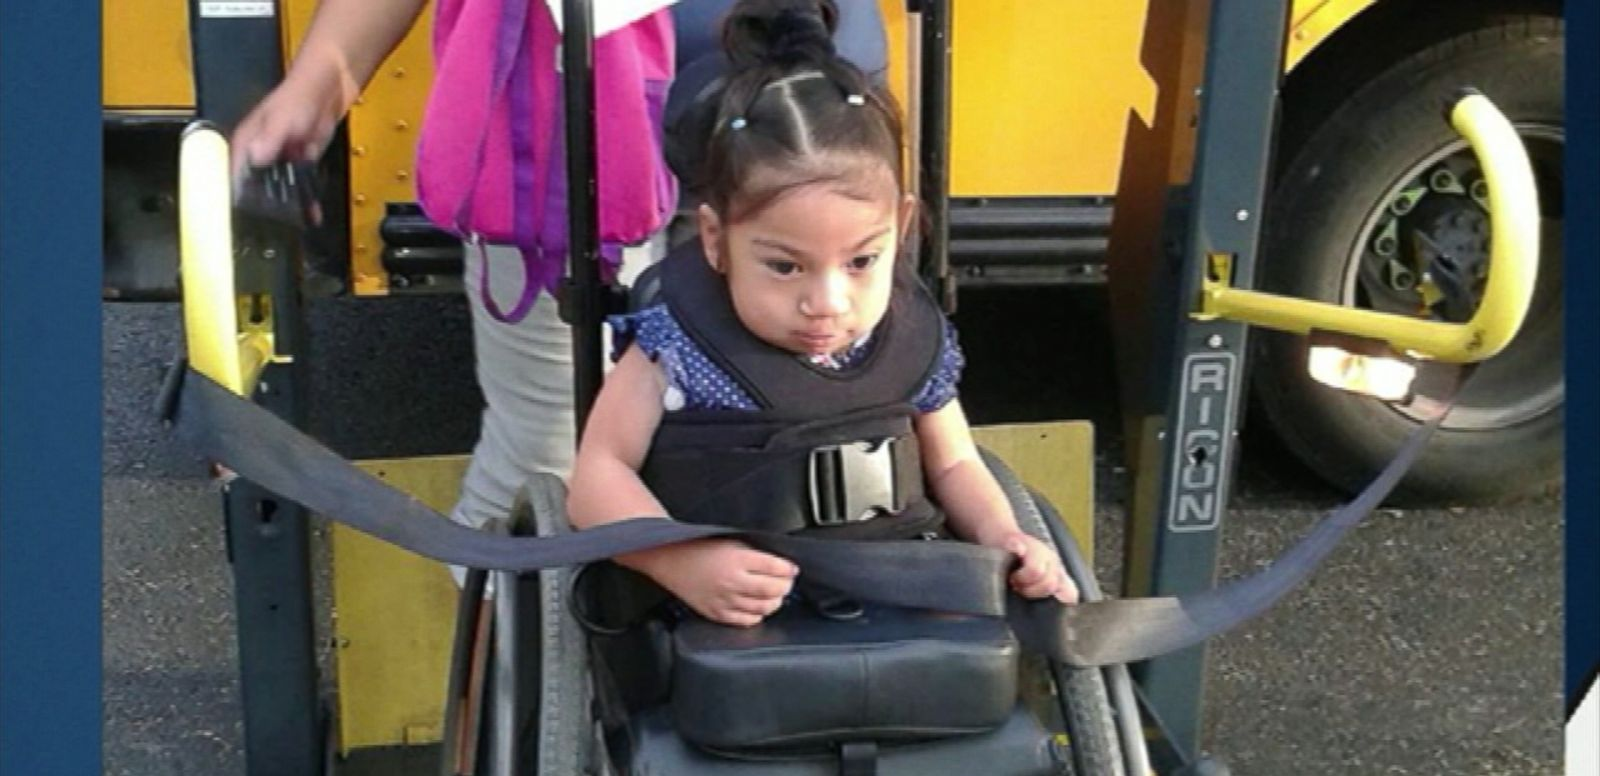 VIDEO: Milagros Perez's customized wheelchair was stolen from outside her home in Santa Ana, California.